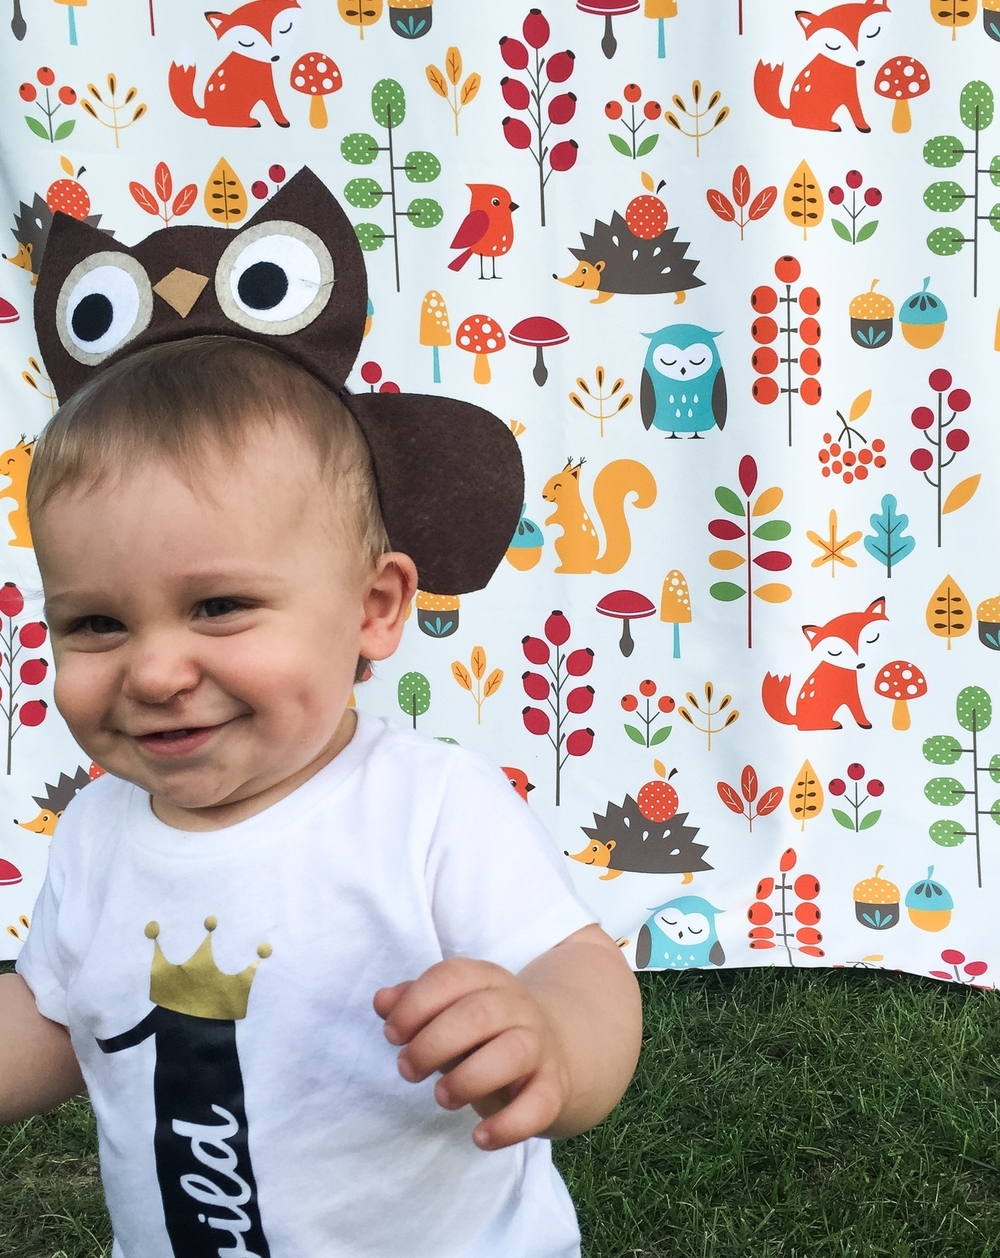 Woodland Animal photo back drop for DIY photo booth